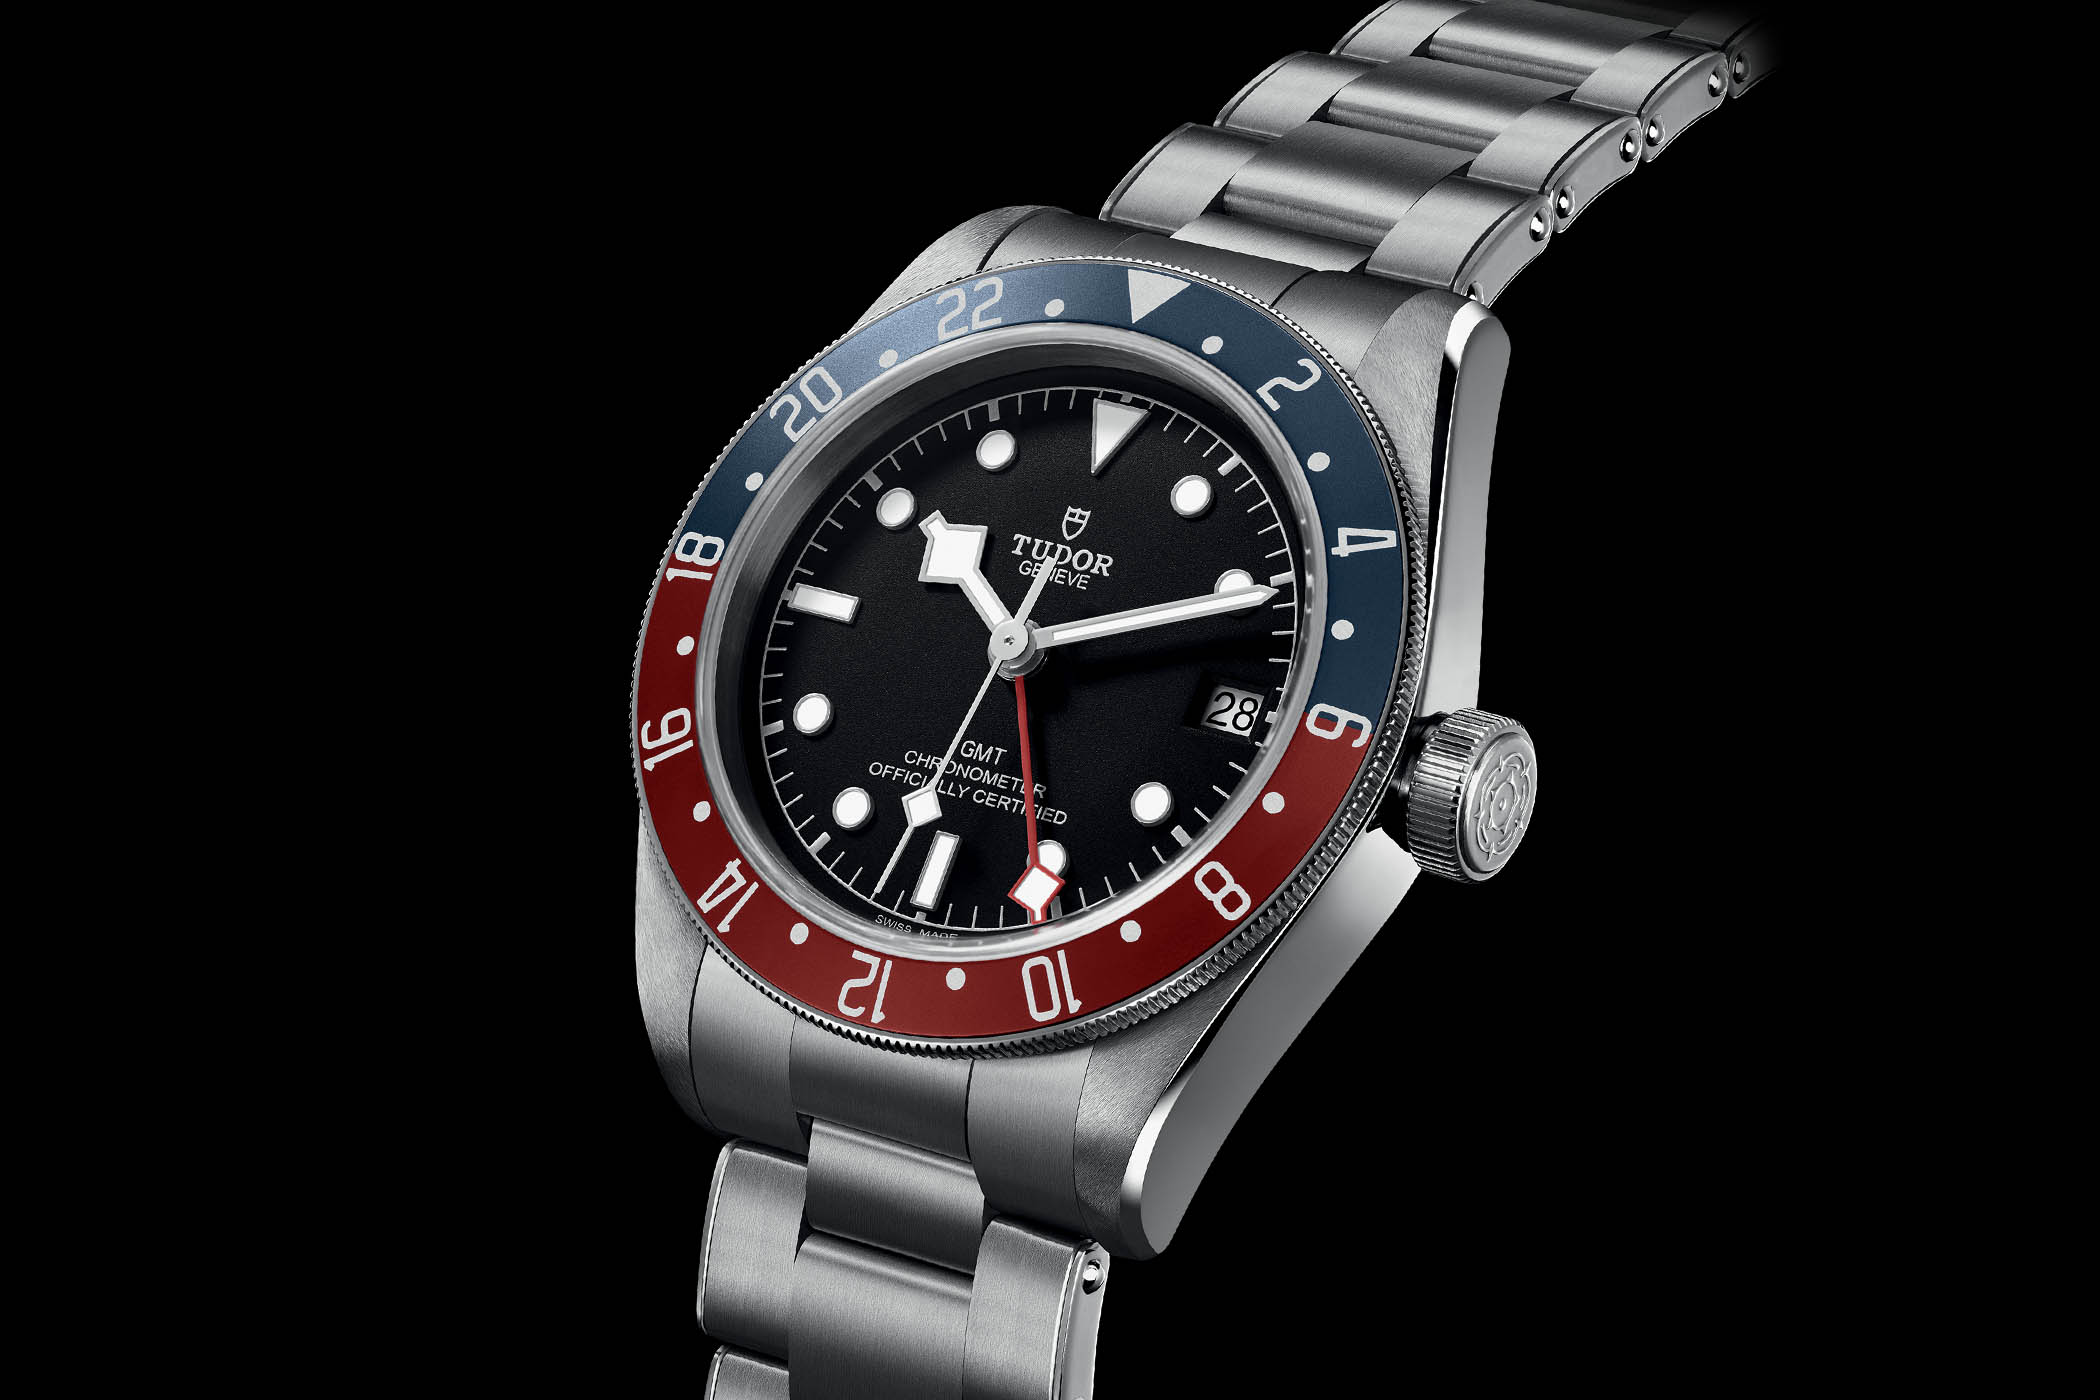 Tudor Black Bay GMT Pepsi Bezel 79830RB - Baselworld 2018